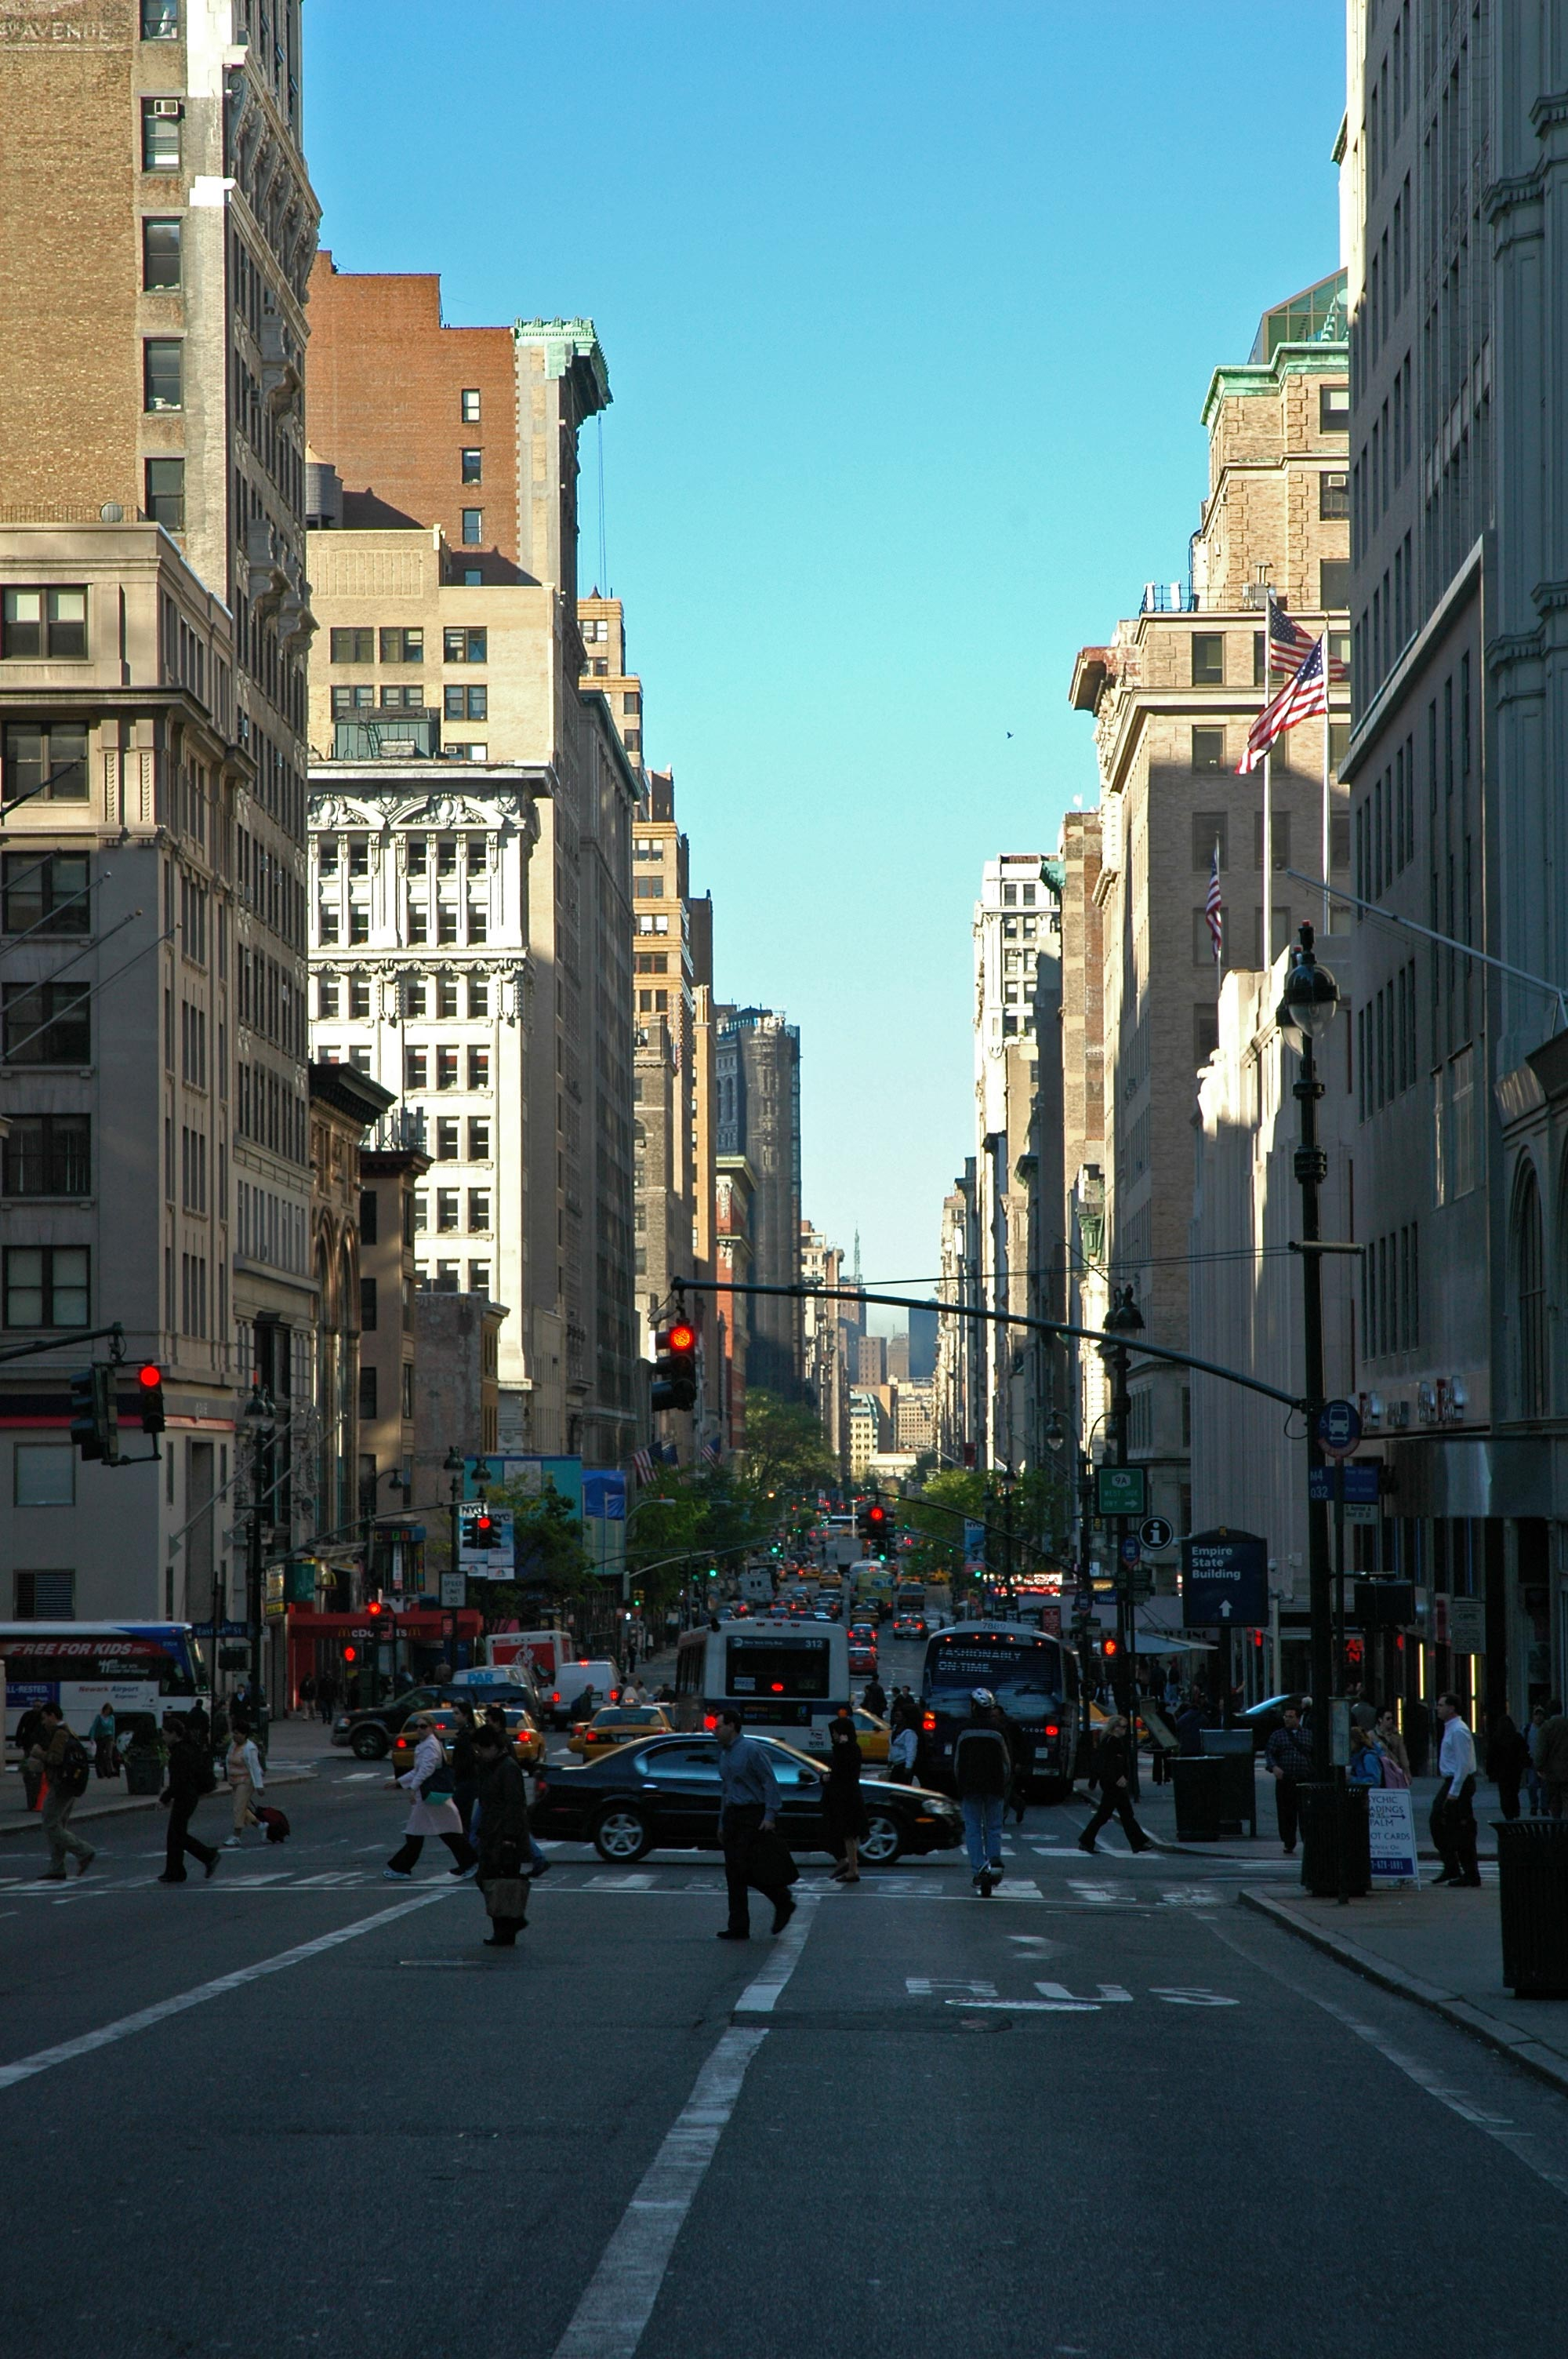 5th Avenue New York The Most Expensive Shopping Street